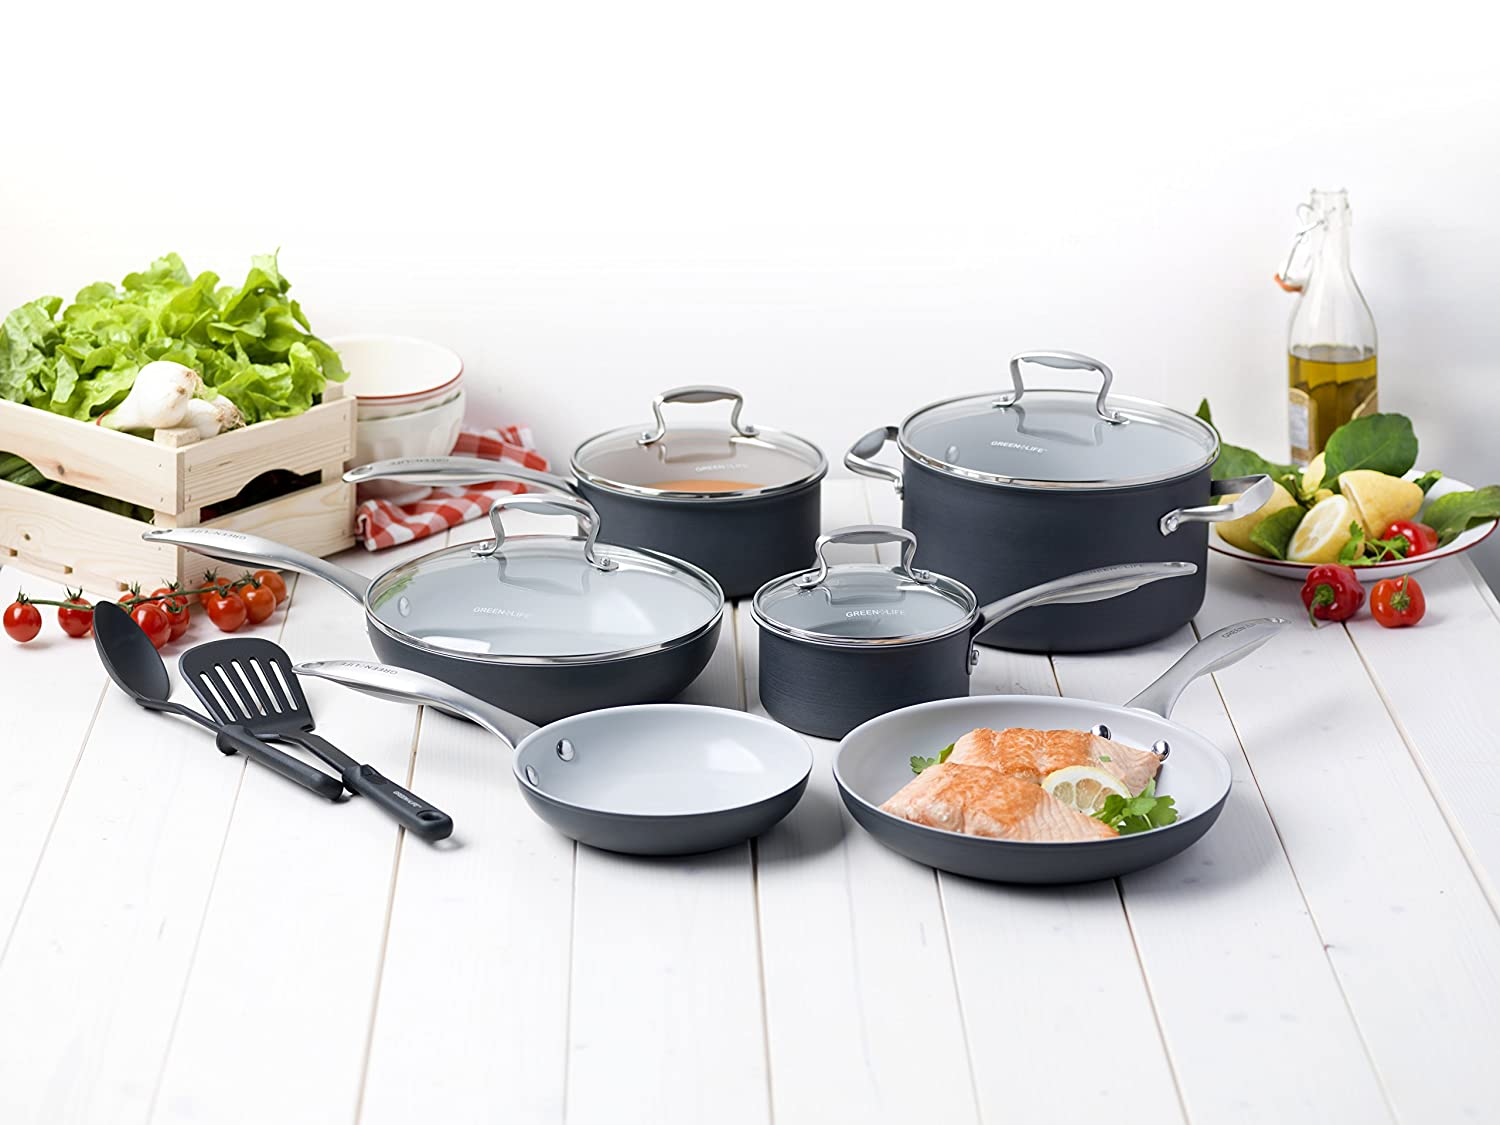 GreenLife 12 Piece Hard Anodized Non-Stick Ceramic Classic Cookware Set